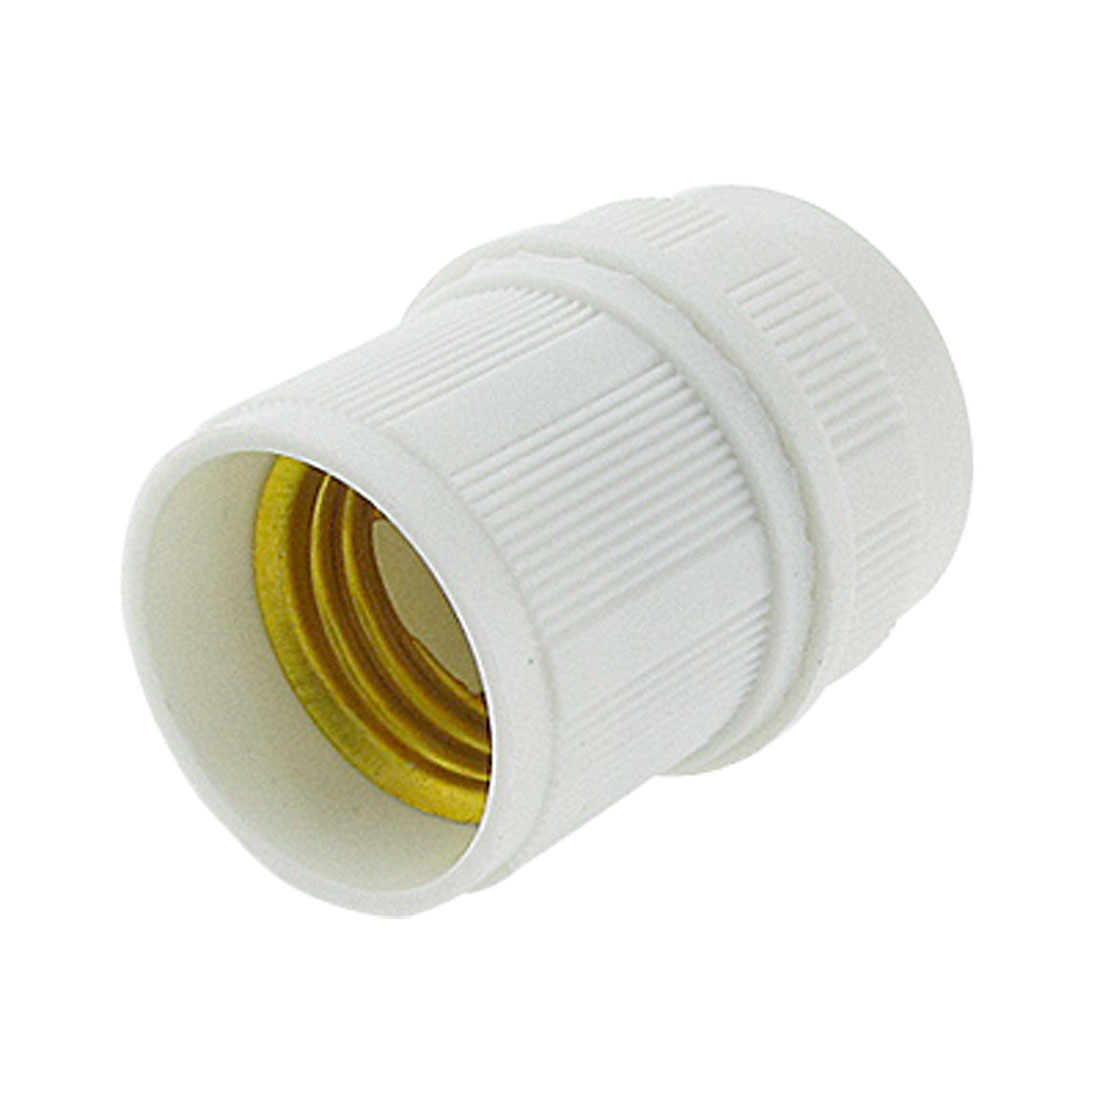 Gold Tone Plated Light Bulb Lamp E27 Socket Holder White